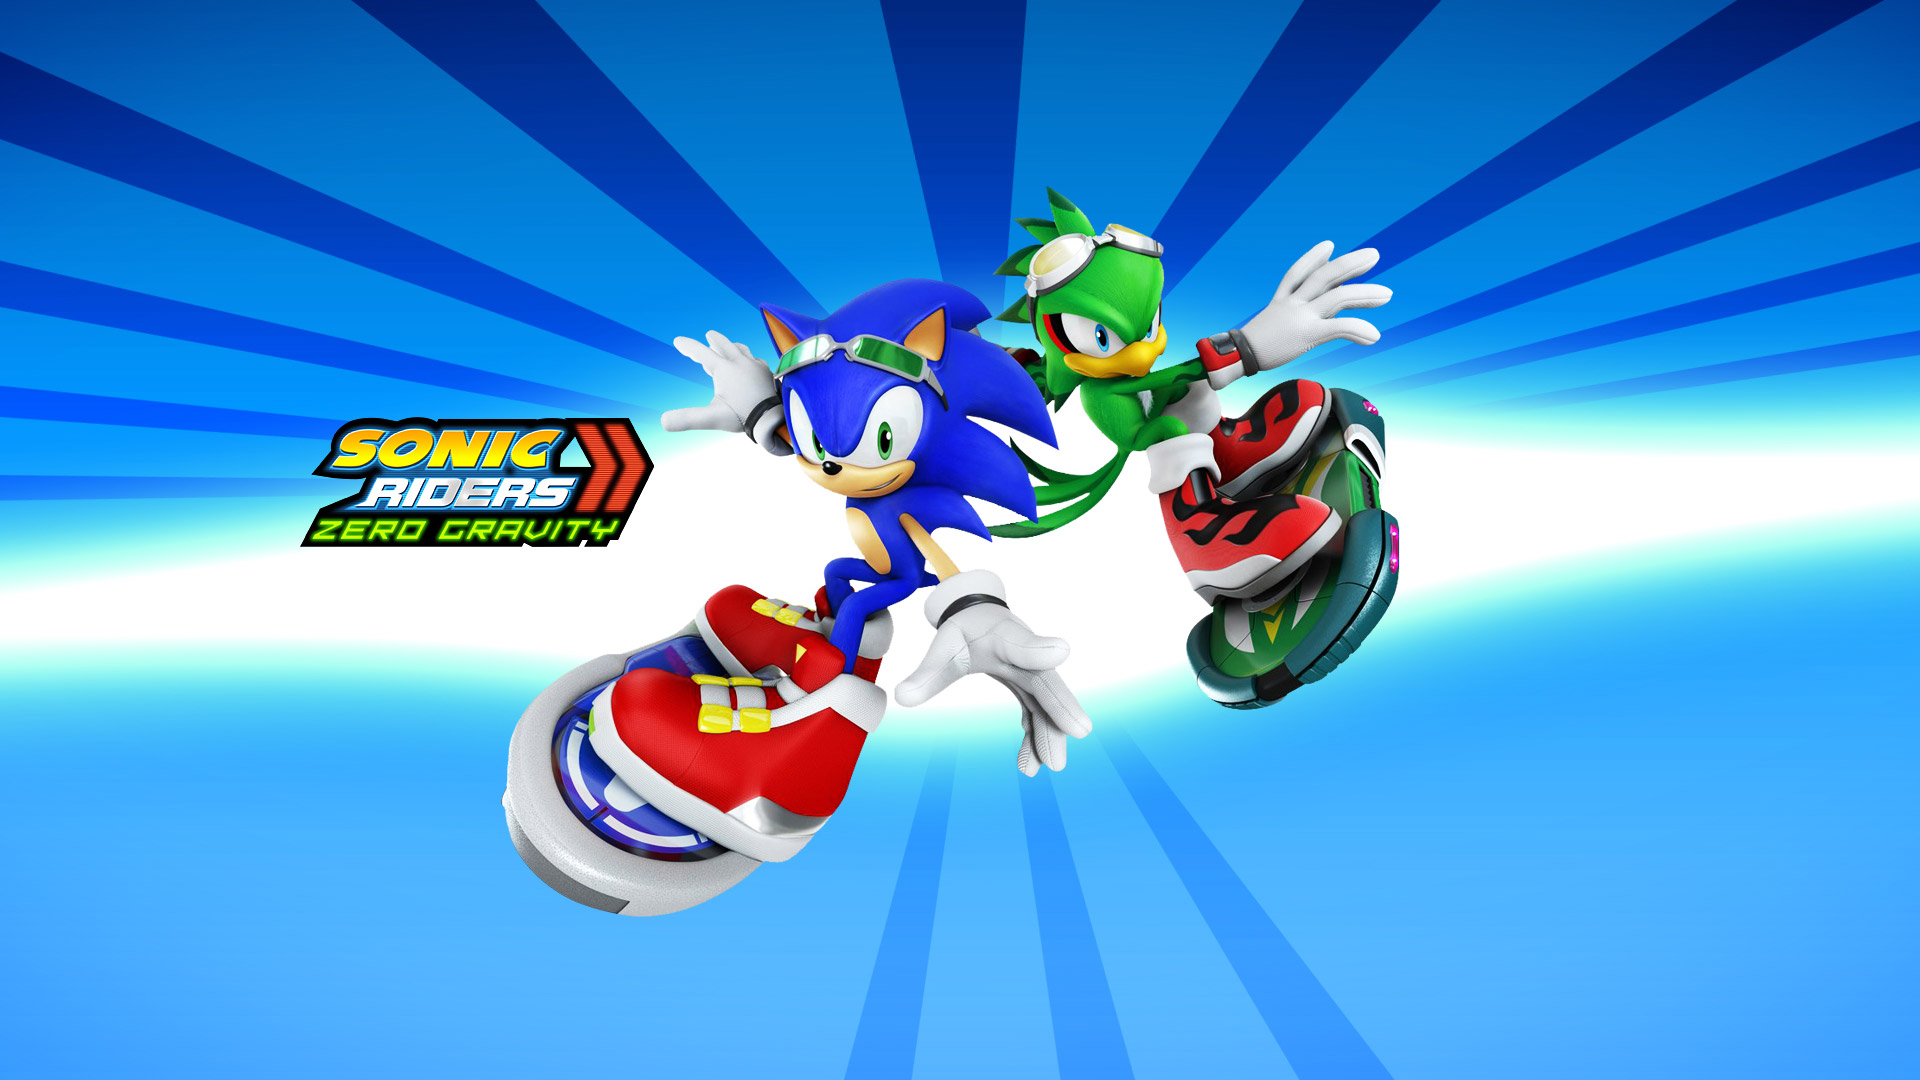 Free Sonic Riders Wallpaper in 1920x1080